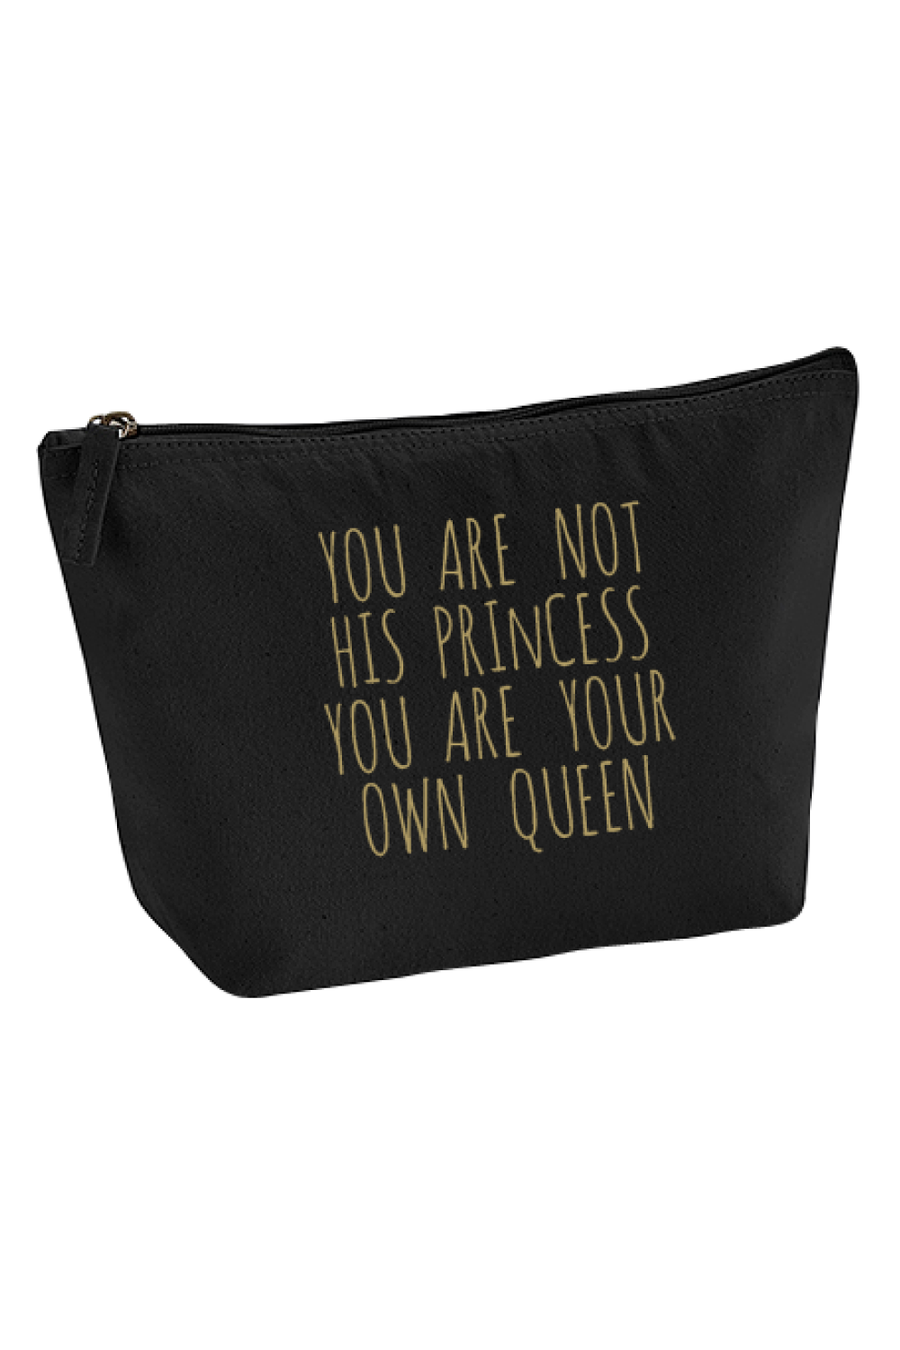 Own Queen toilettas - Joh Clothing